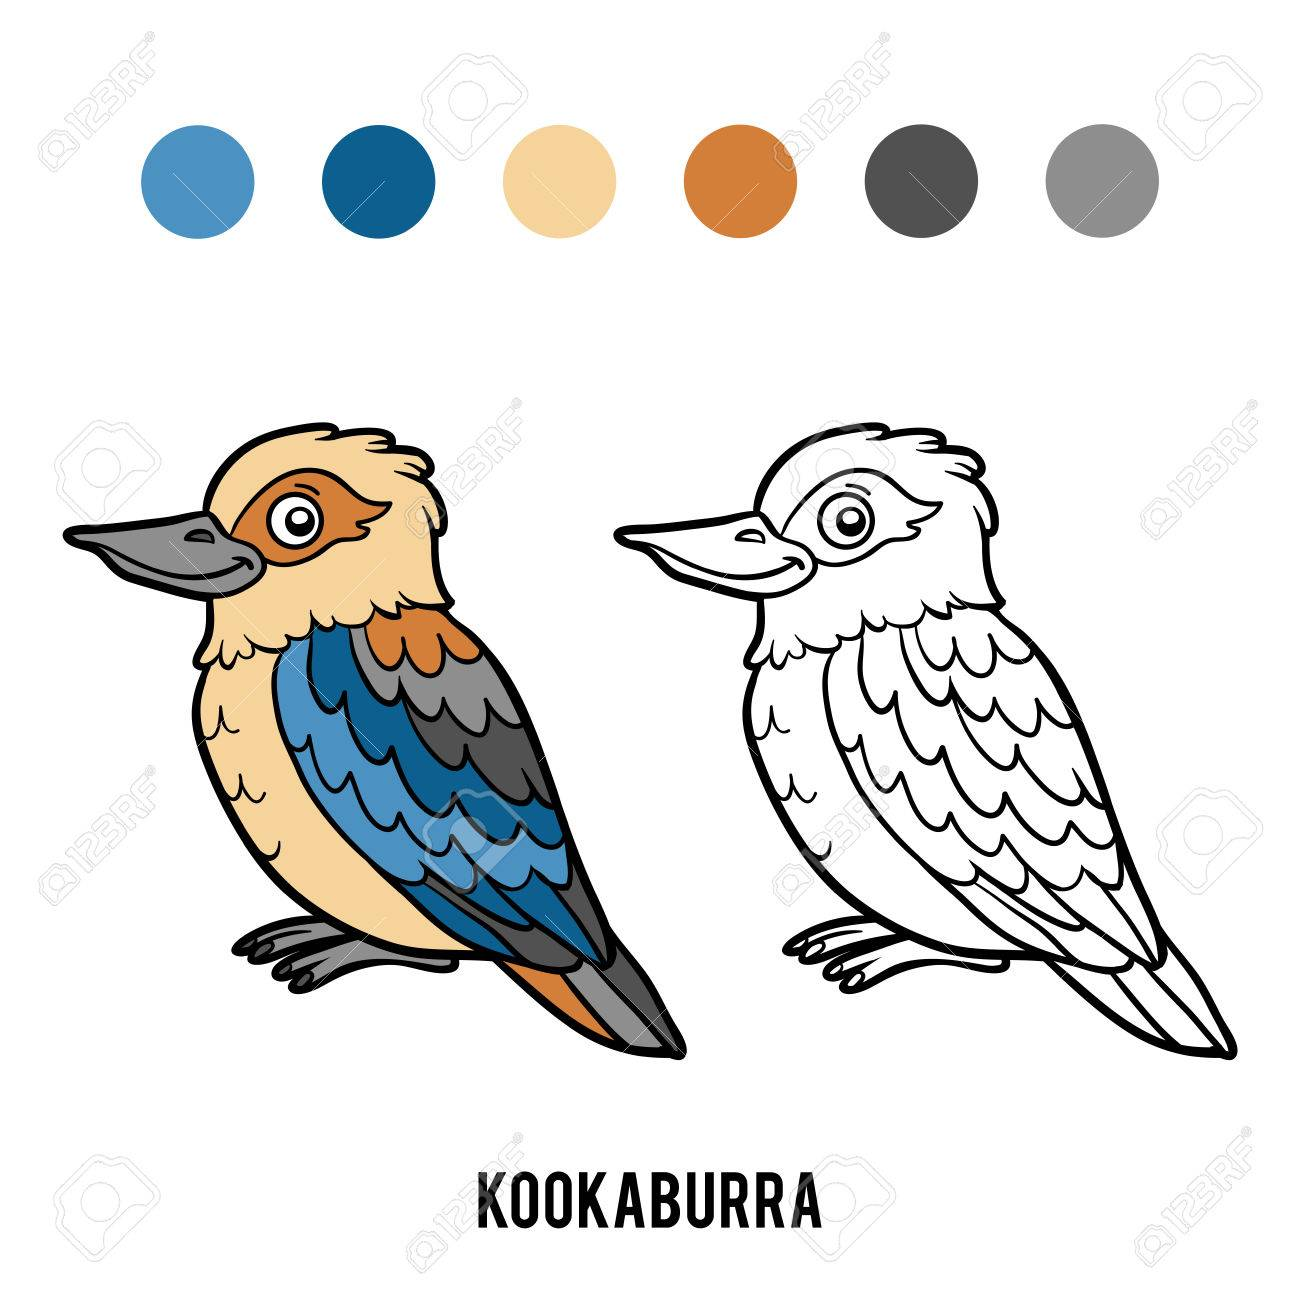 Coloring Book For Children Kookaburra Stock Vector